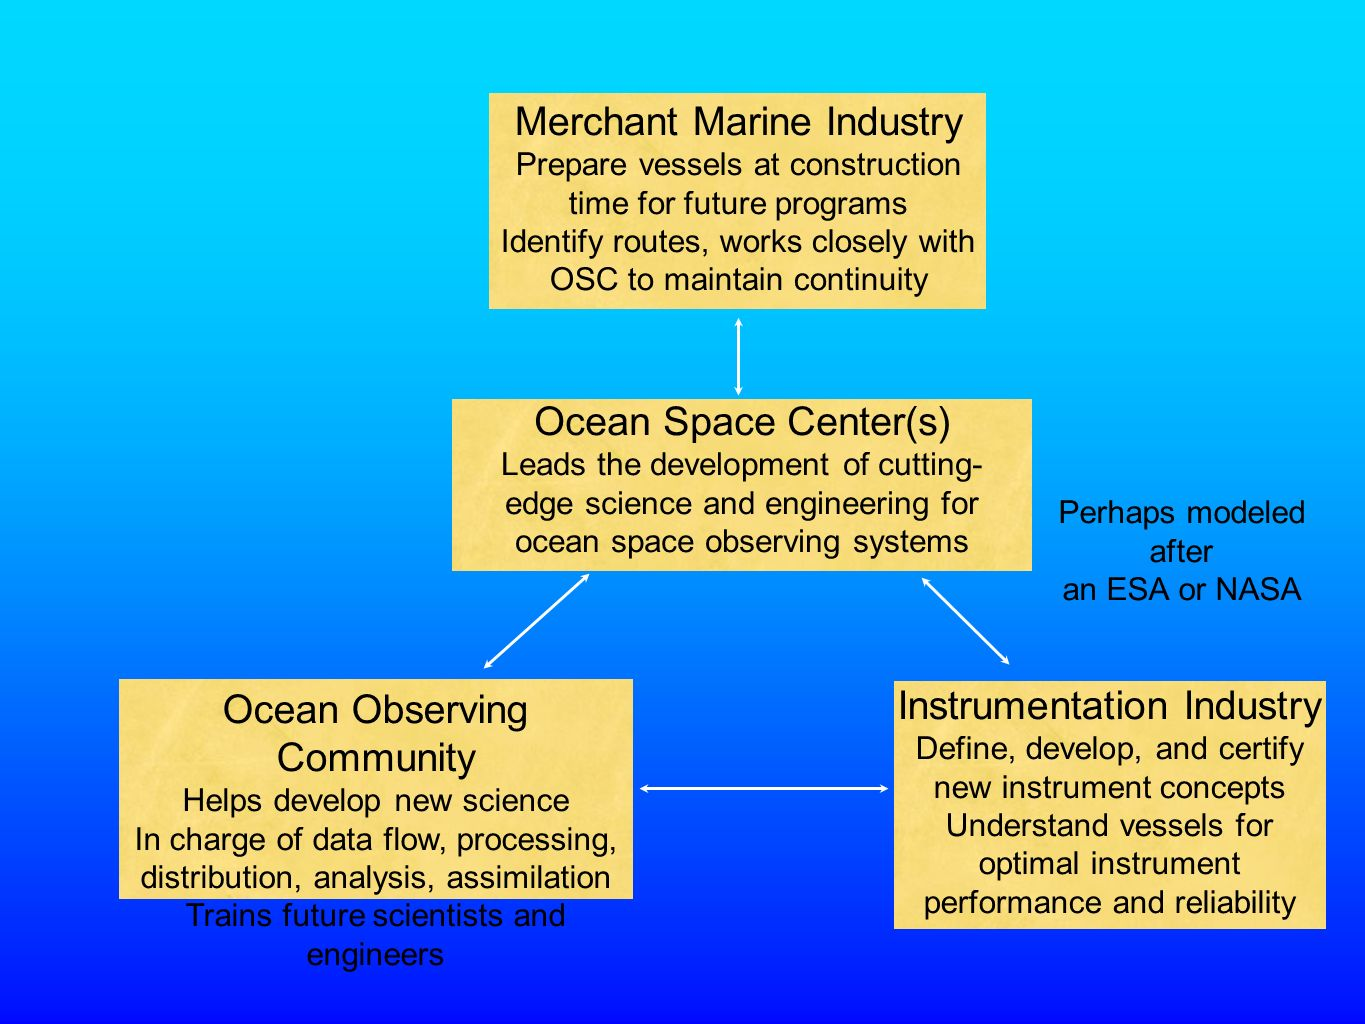 Merchant Marine Industry Prepare vessels at construction time for future programs Identify routes, works closely with OSC to maintain continuity Ocean Observing Community Helps develop new science In charge of data flow, processing, distribution, analysis, assimilation Trains future scientists and engineers Instrumentation Industry Define, develop, and certify new instrument concepts Understand vessels for optimal instrument performance and reliability Ocean Space Center(s) Leads the development of cutting- edge science and engineering for ocean space observing systems Perhaps modeled after an ESA or NASA